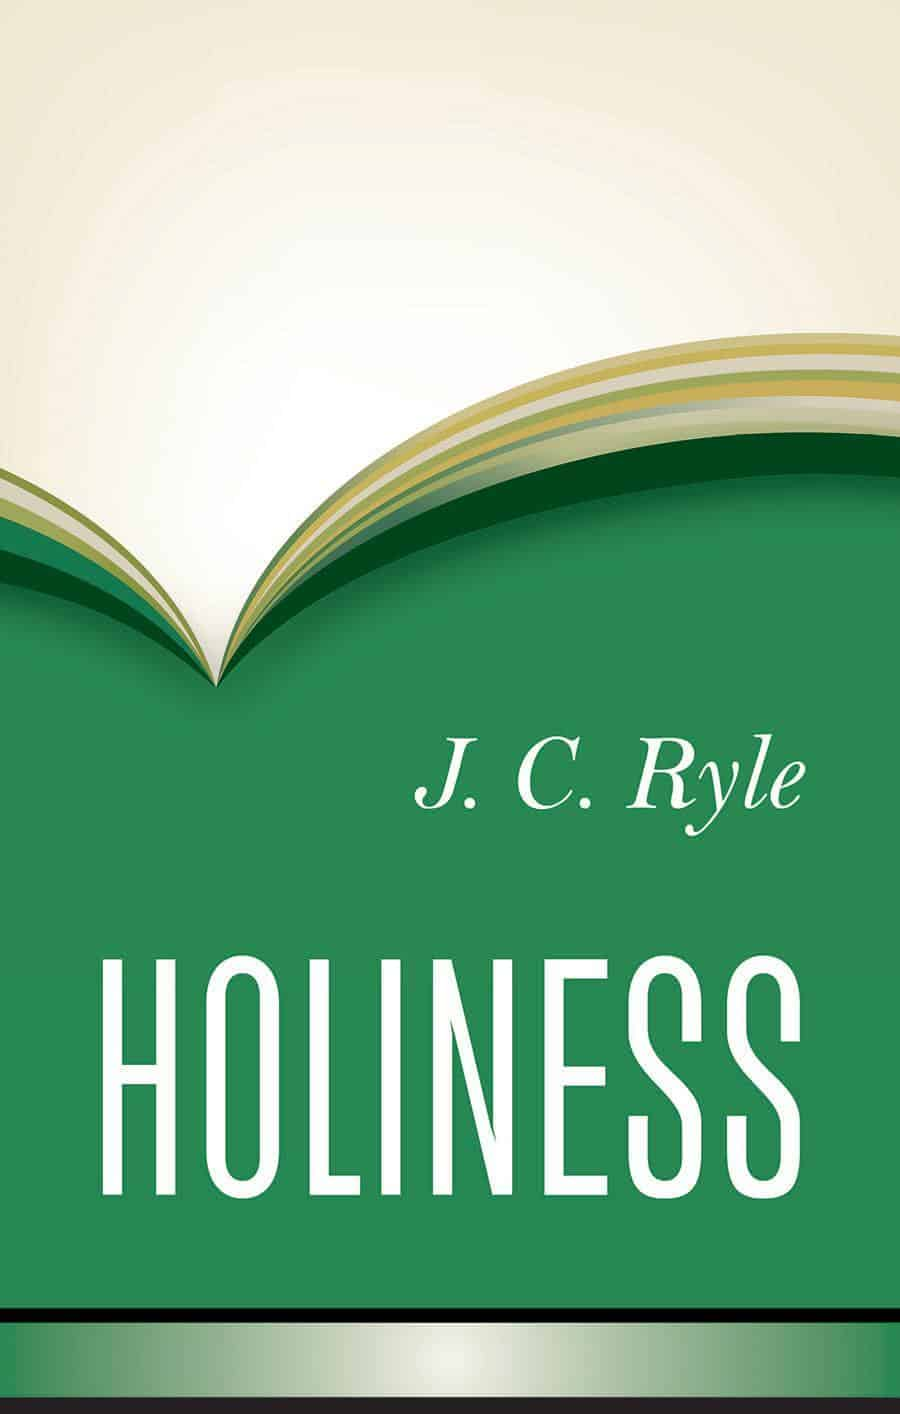 JC Ryle's Holiness–A Review